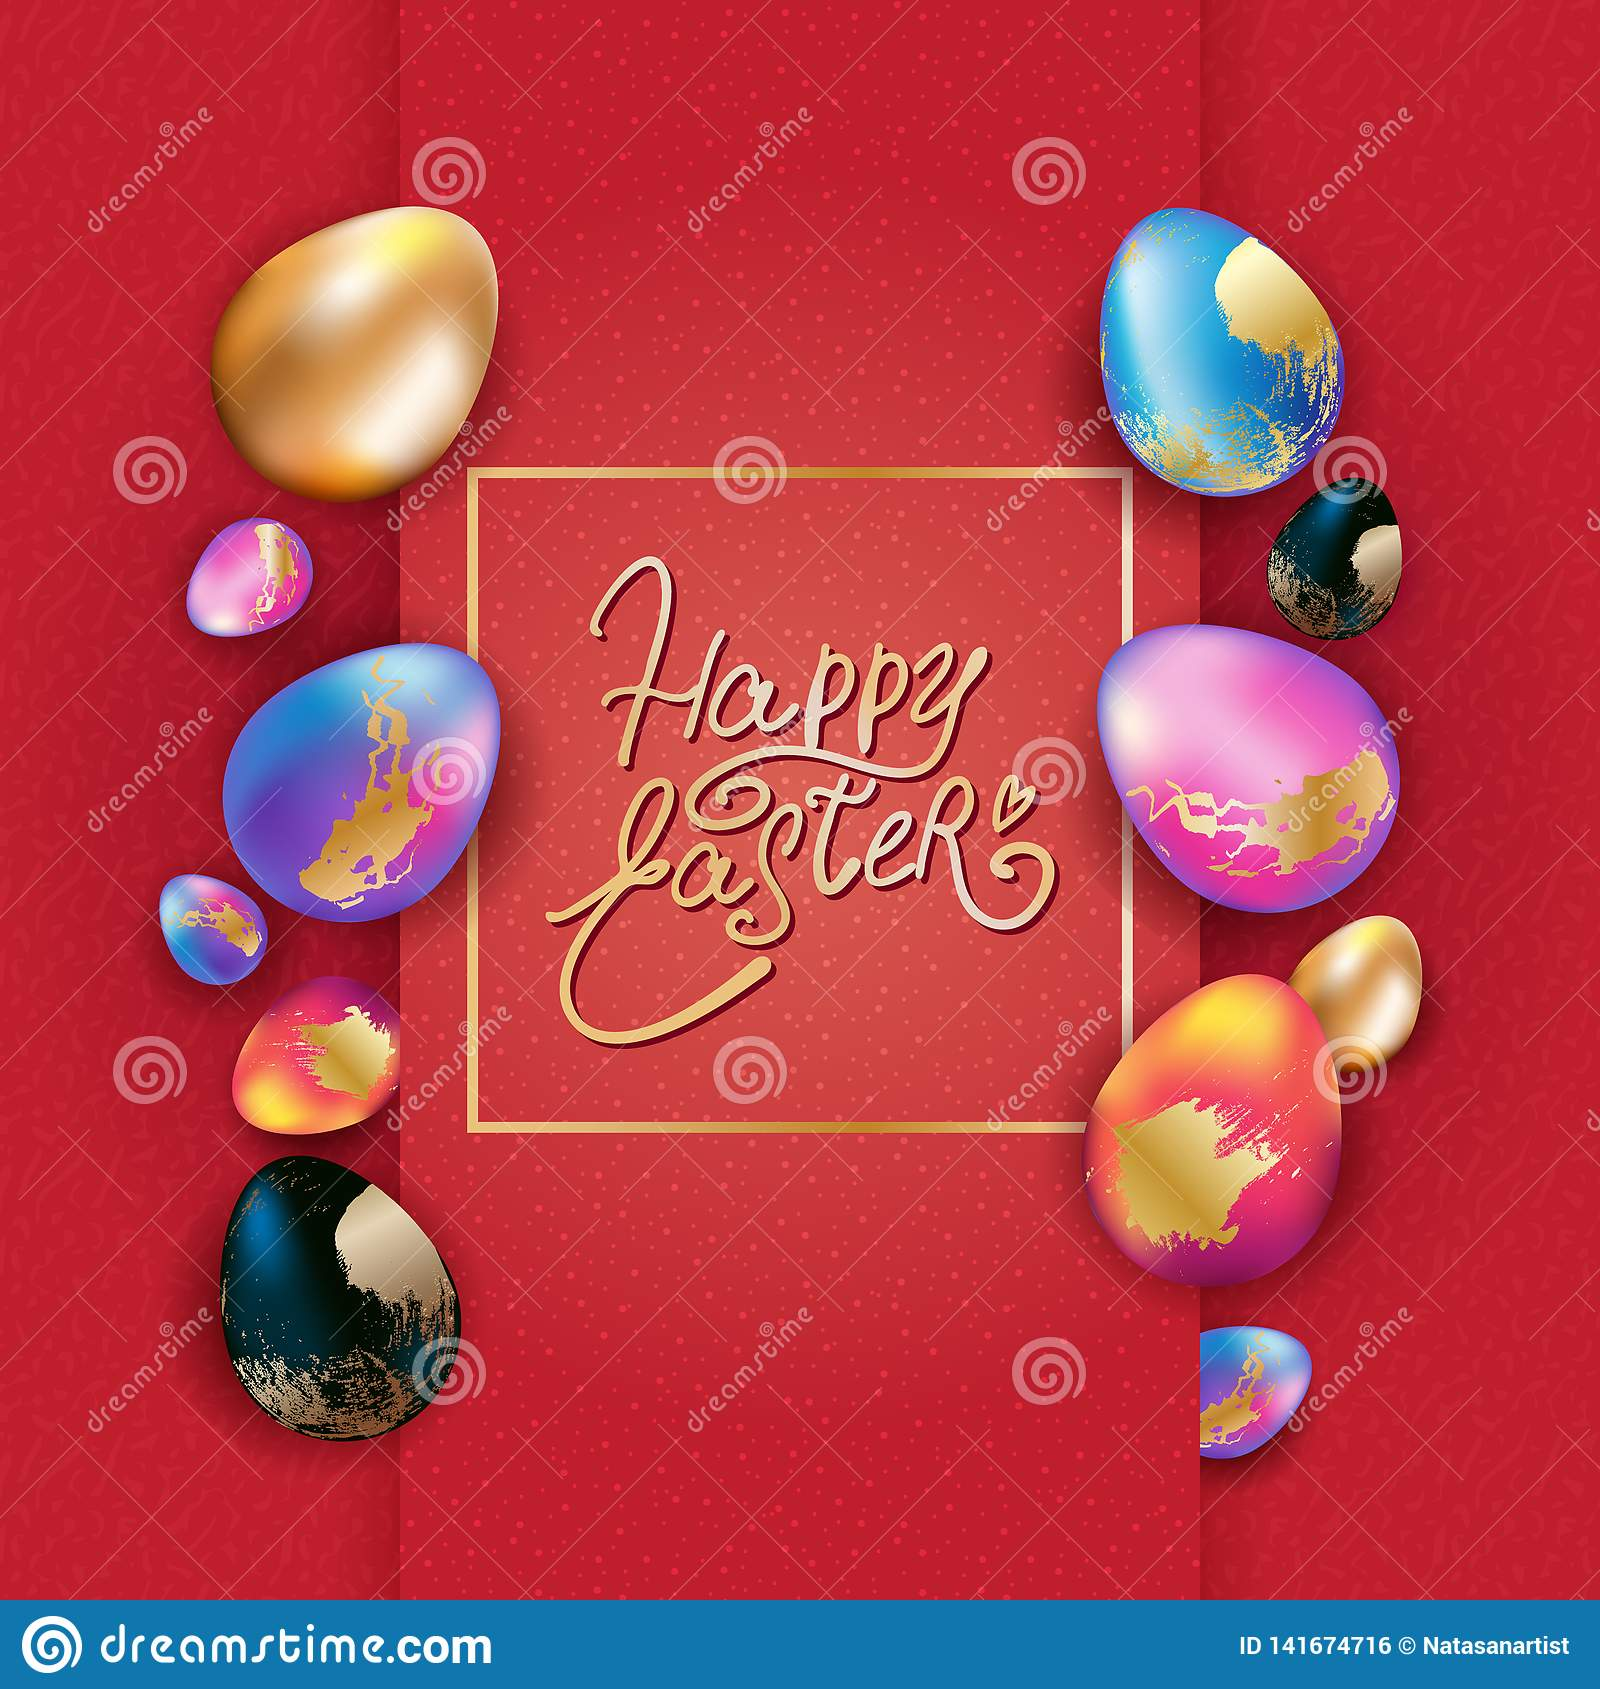 Easter banner design with colorful eggs